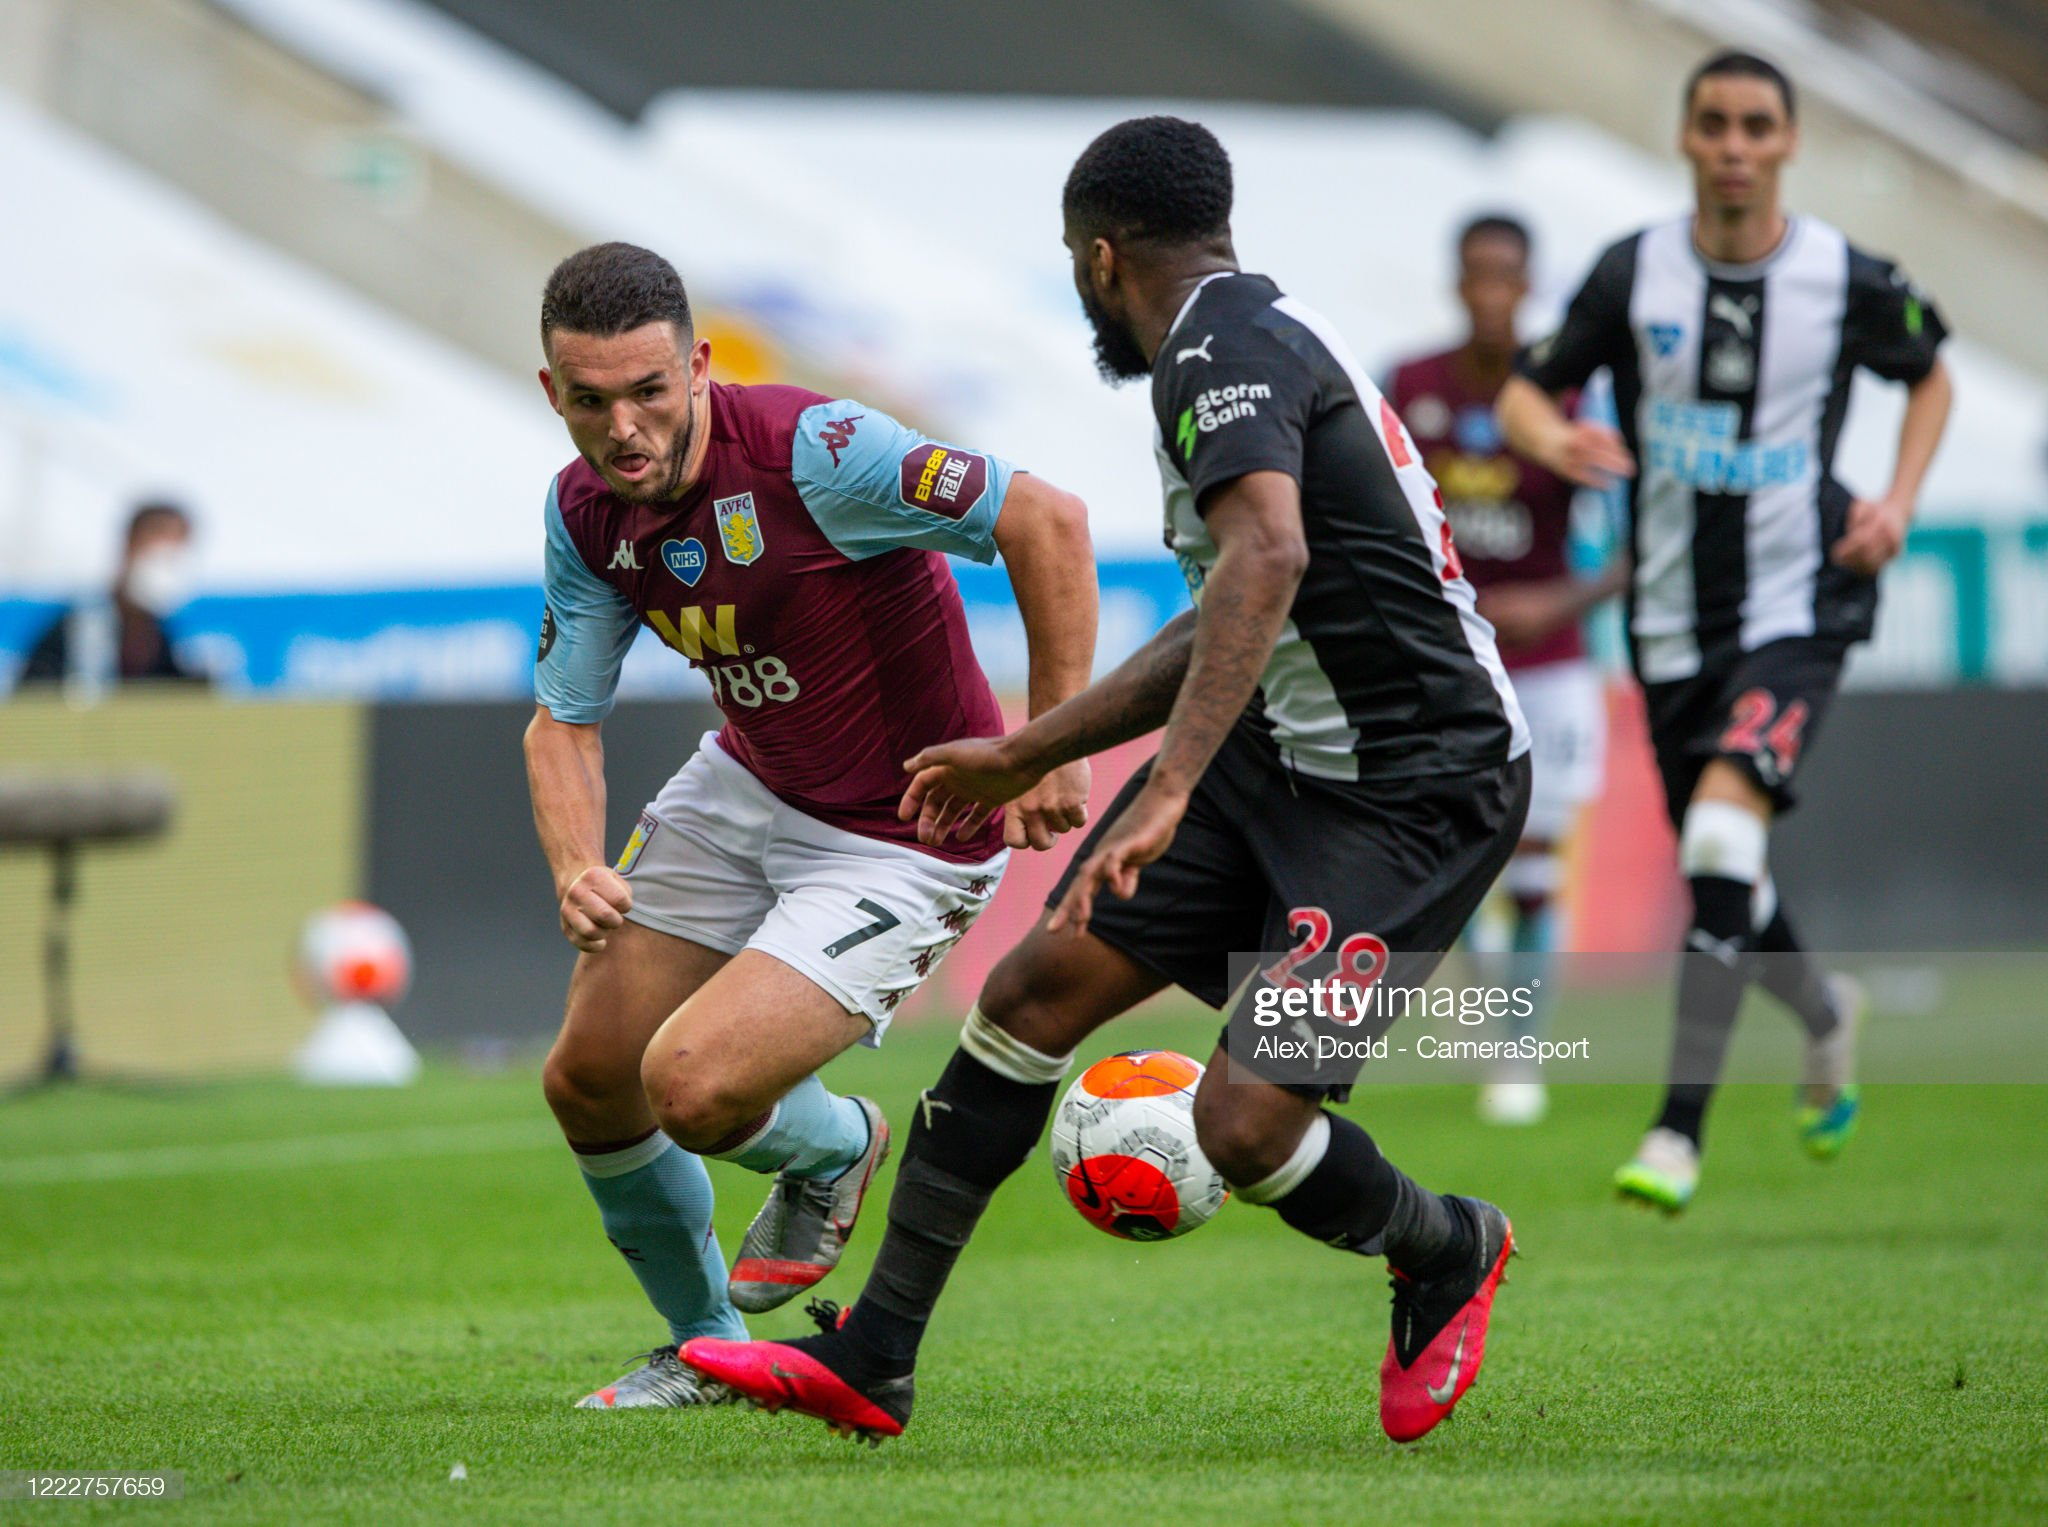 Aston Villa vs Newcastle preview, prediction and odds